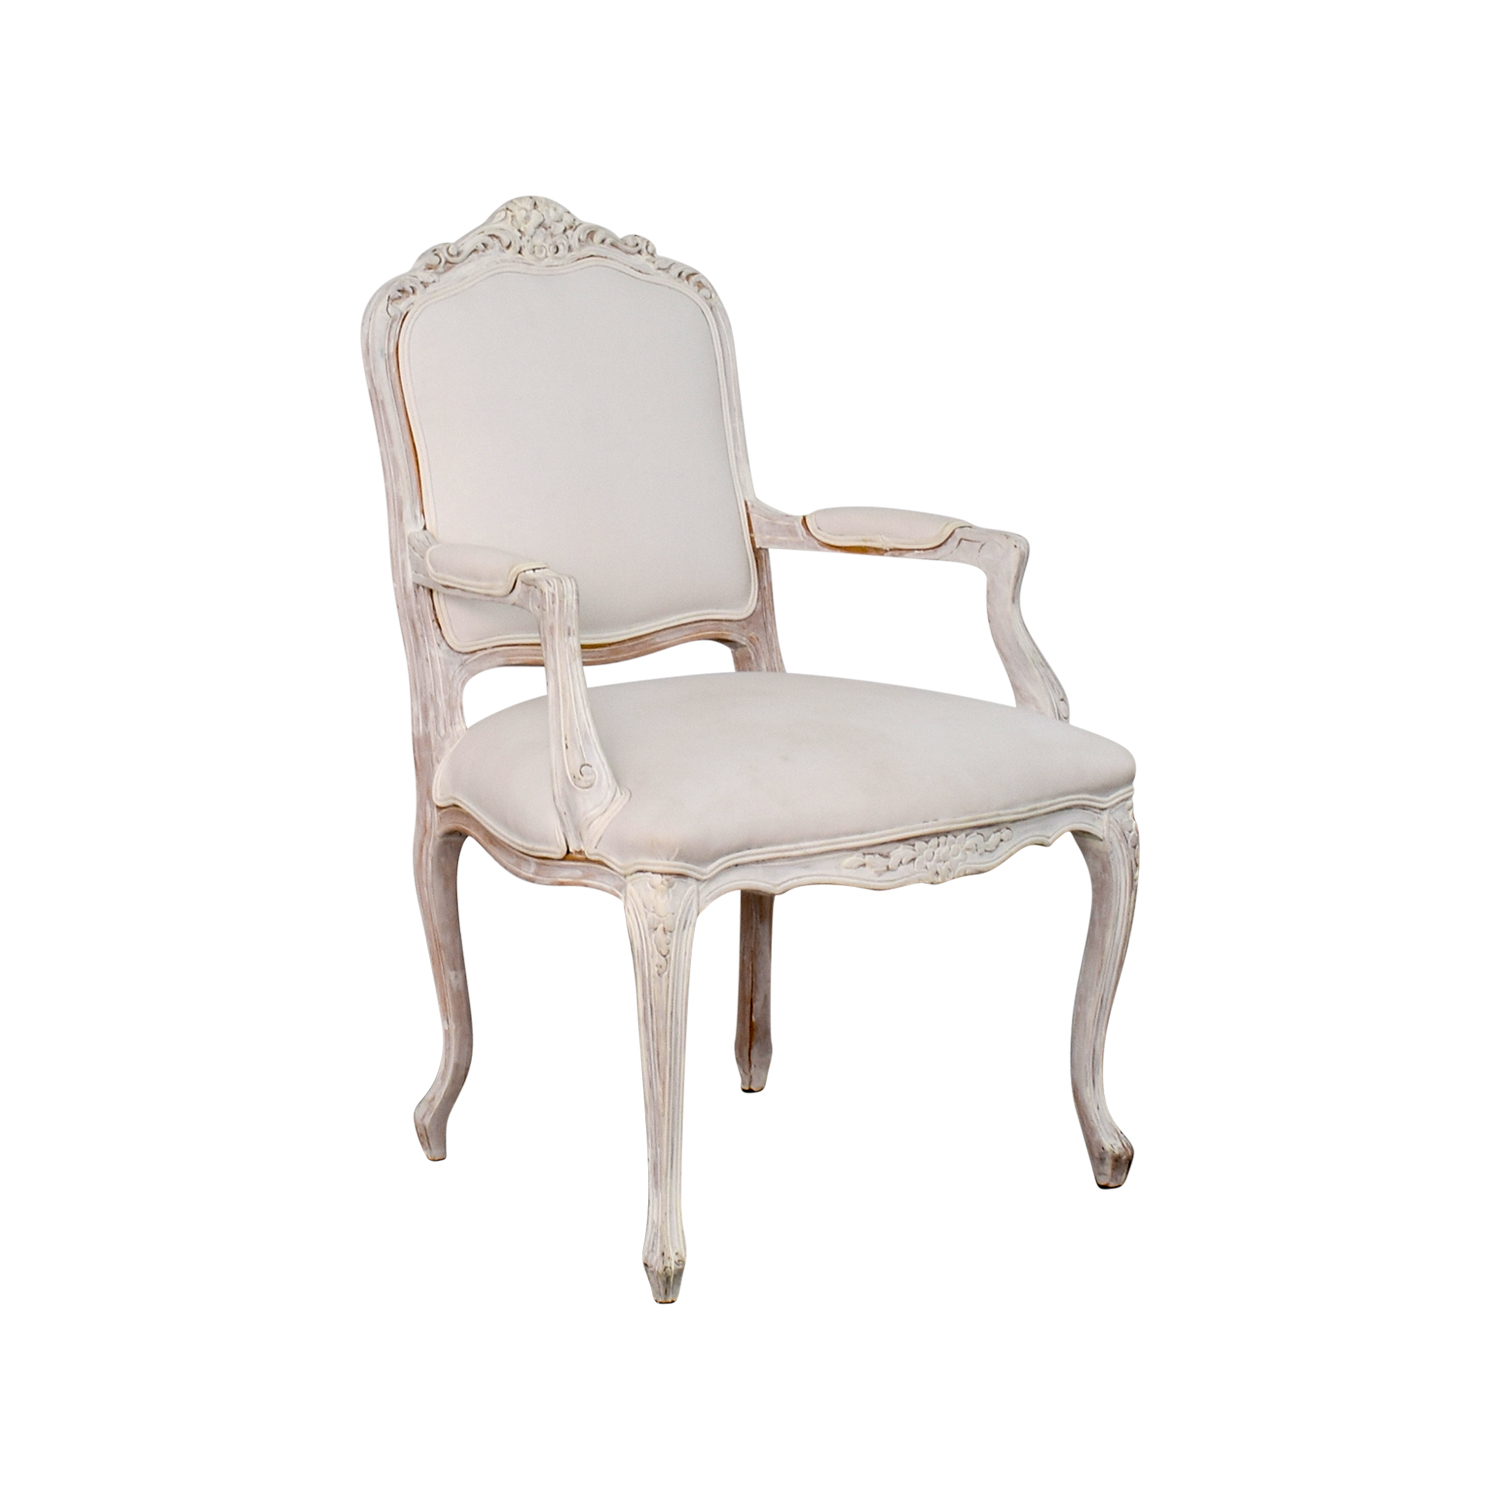 47 off antique chippendale white chair chairs for Furniture 2nd hand